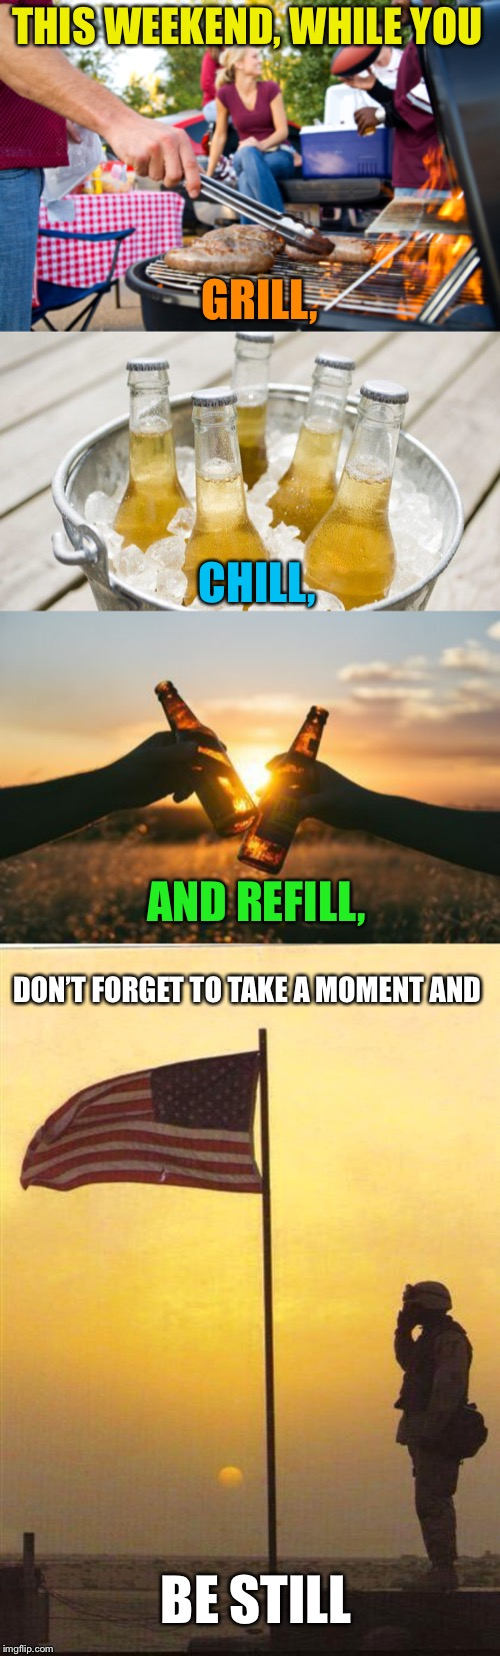 Happy Memorial Day Weekend! | THIS WEEKEND, WHILE YOU BE STILL GRILL, CHILL, AND REFILL, DON'T FORGET TO TAKE A MOMENT AND | image tagged in memorial day,grilling,chillin,remember,respect,support our troops | made w/ Imgflip meme maker